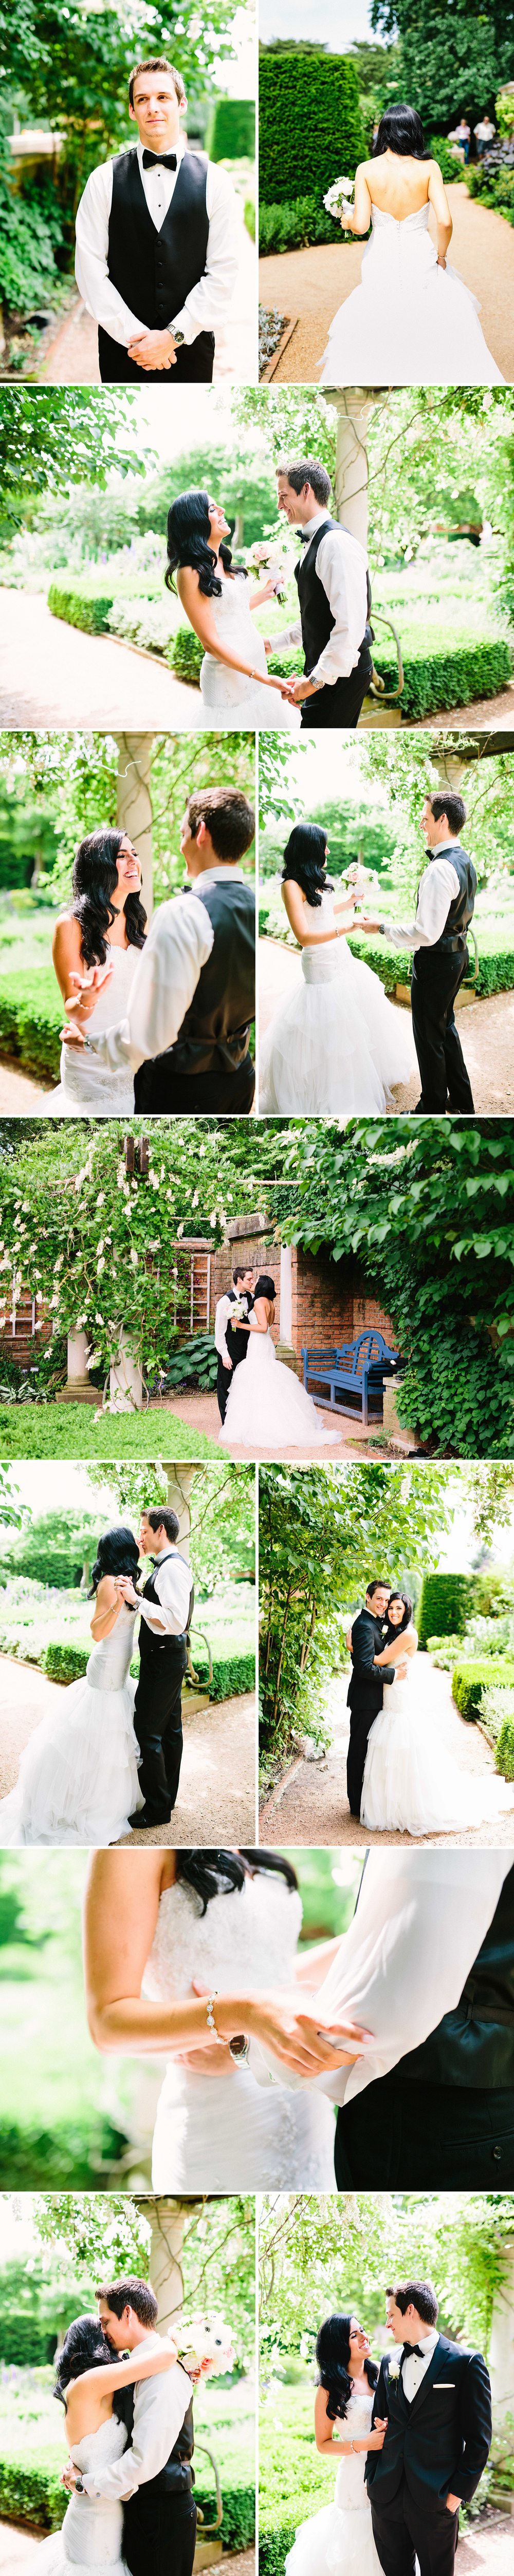 chicago-fine-art-wedding-photography-keele3